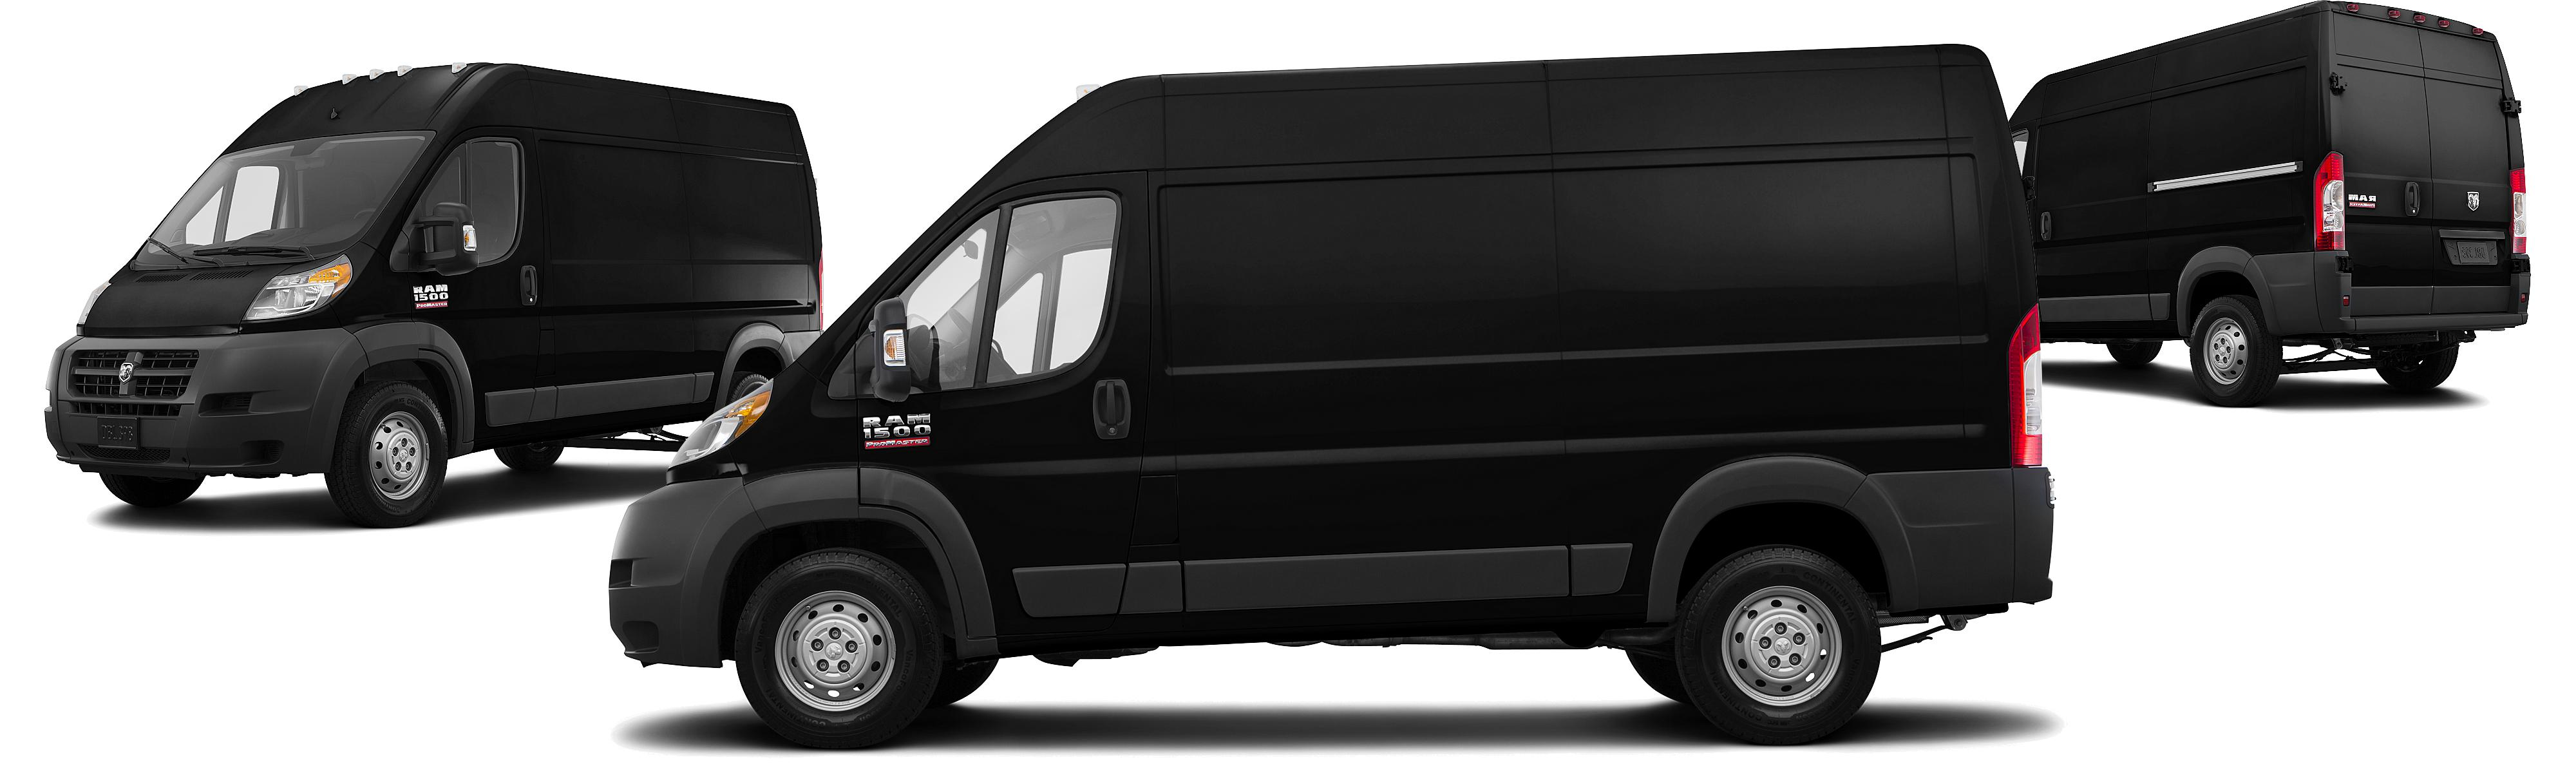 2016 Ram Promaster Cargo 1500 136 Wb R Low Roof Van Research Groovecar